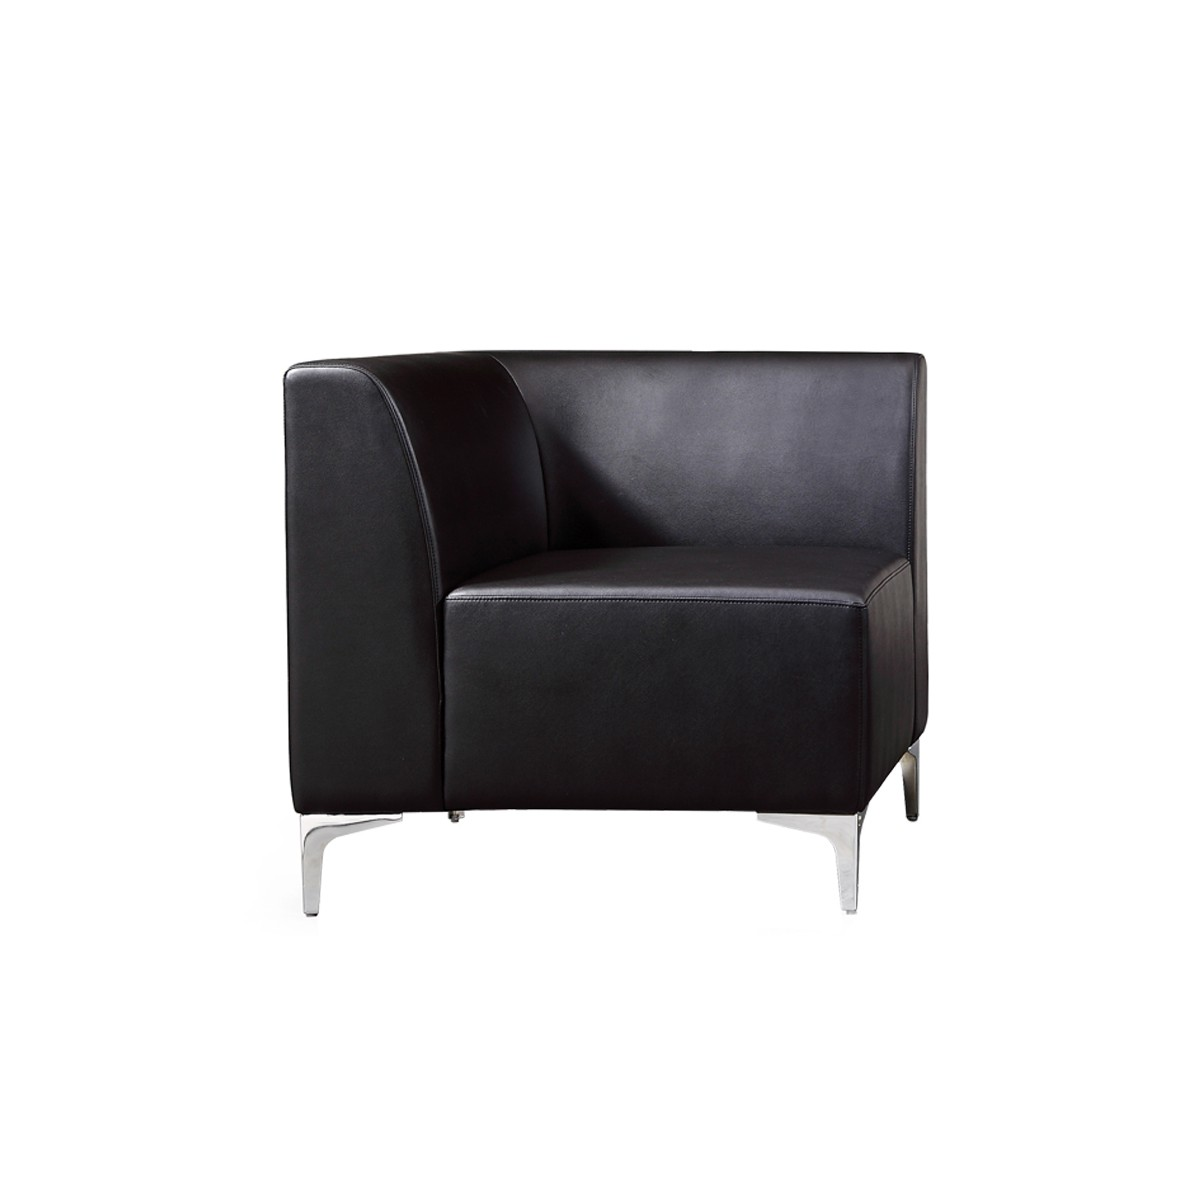 Modular Corner Sofa Section Black Faux Leather